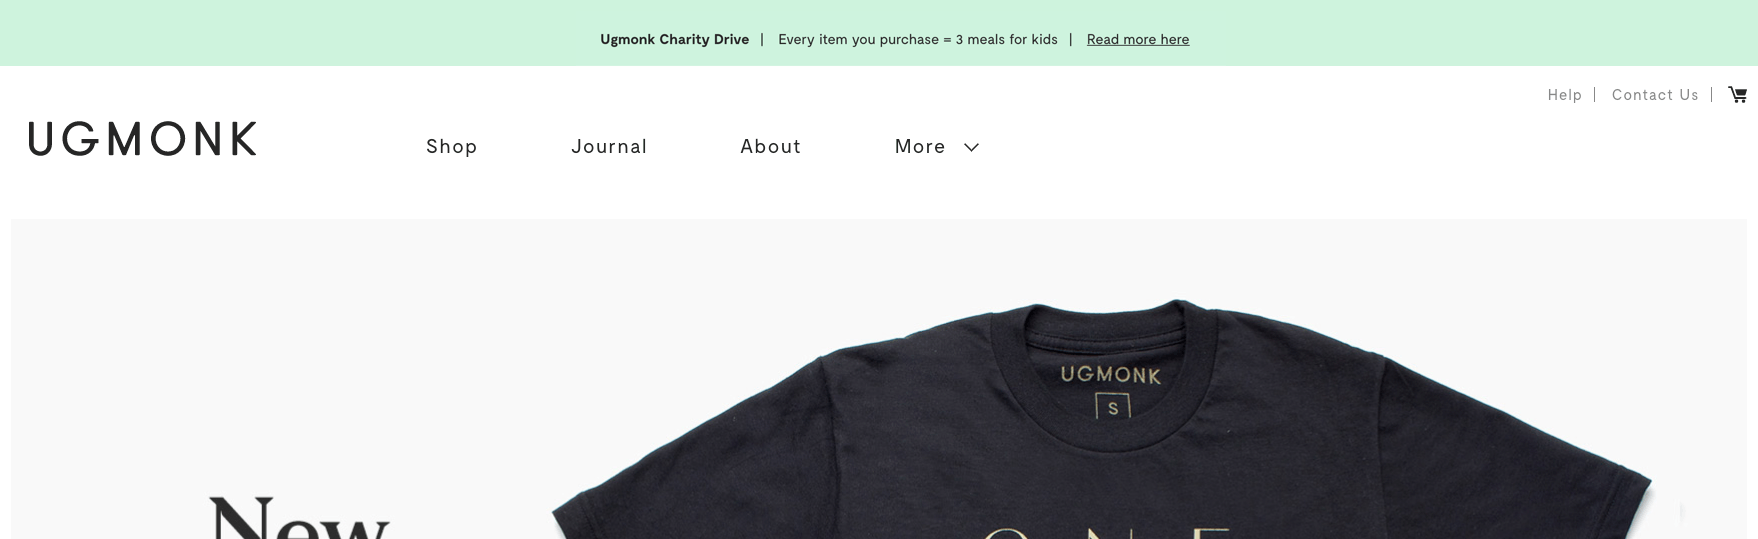 Ugmonk donation details on homepage